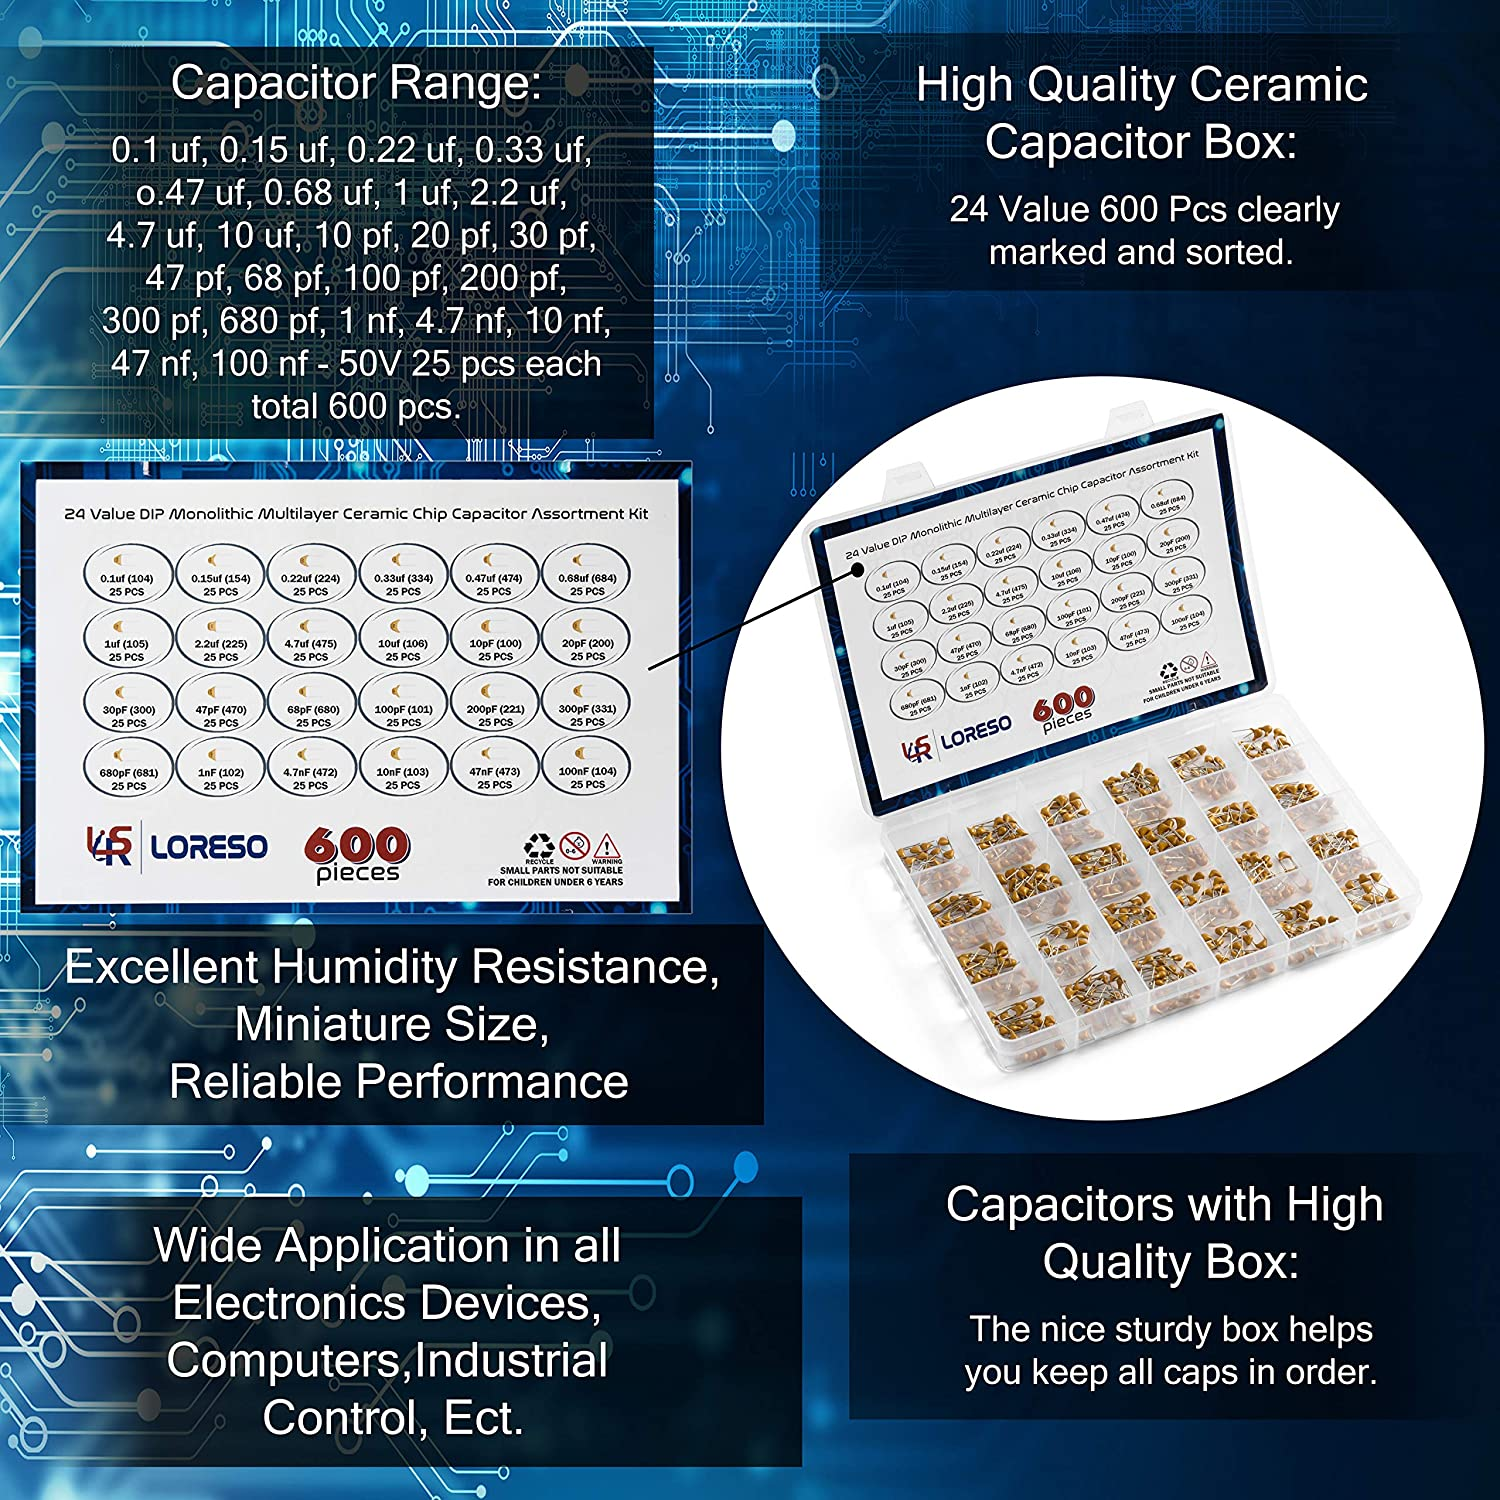 10pf to 10uf Electronic Kit Loreso 600 Pack 50V Ceramic Capacitor Componenets Kit Hobby Electronics Kit 26 Value 600 Electronics Assortment Kit Components Kit for Car Audio Project Boxes